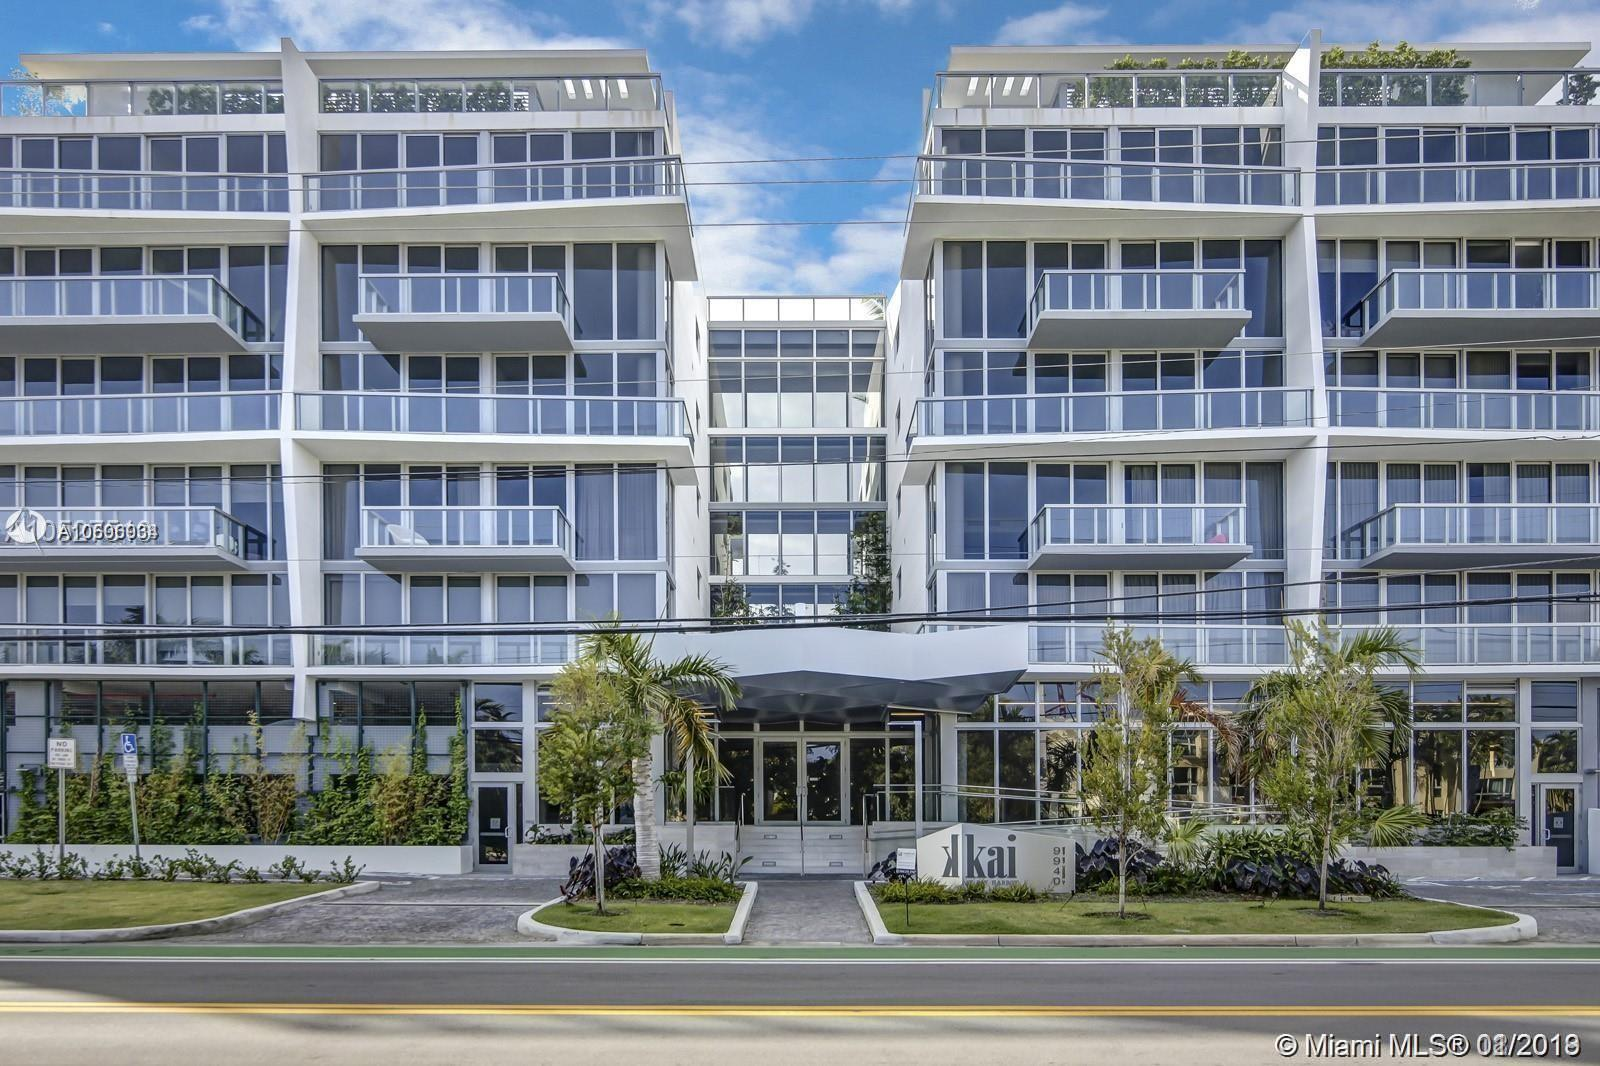 NEW LUXURIOUS AND ELEGANT WATERFRONT CONDOMINIUM RESORT STYLE, COMPLETELY REMODELED WITH TOP OF THE LINE FINISHING DETAILS. FULLY FURNISHED AND DECORATED FROM ADDISON HOUSE. LOCATED IN THE PRESTIGIOUS BAY HARBOR ISLAND, THIS IS A BEAUTY CORNER UNIT WITH CANAL VIEWS, WALKING DISTANCE TO THE BEACH AND SHOPPING, 360 DEGREES VIEWS ROOF TOP DECK WITH INFINITY POOL, JACUZZI AND 4 GRILLS, 2 PARKING SPACES (NO LIFT) , ONLY 57 UNITS IN THE BUILDING